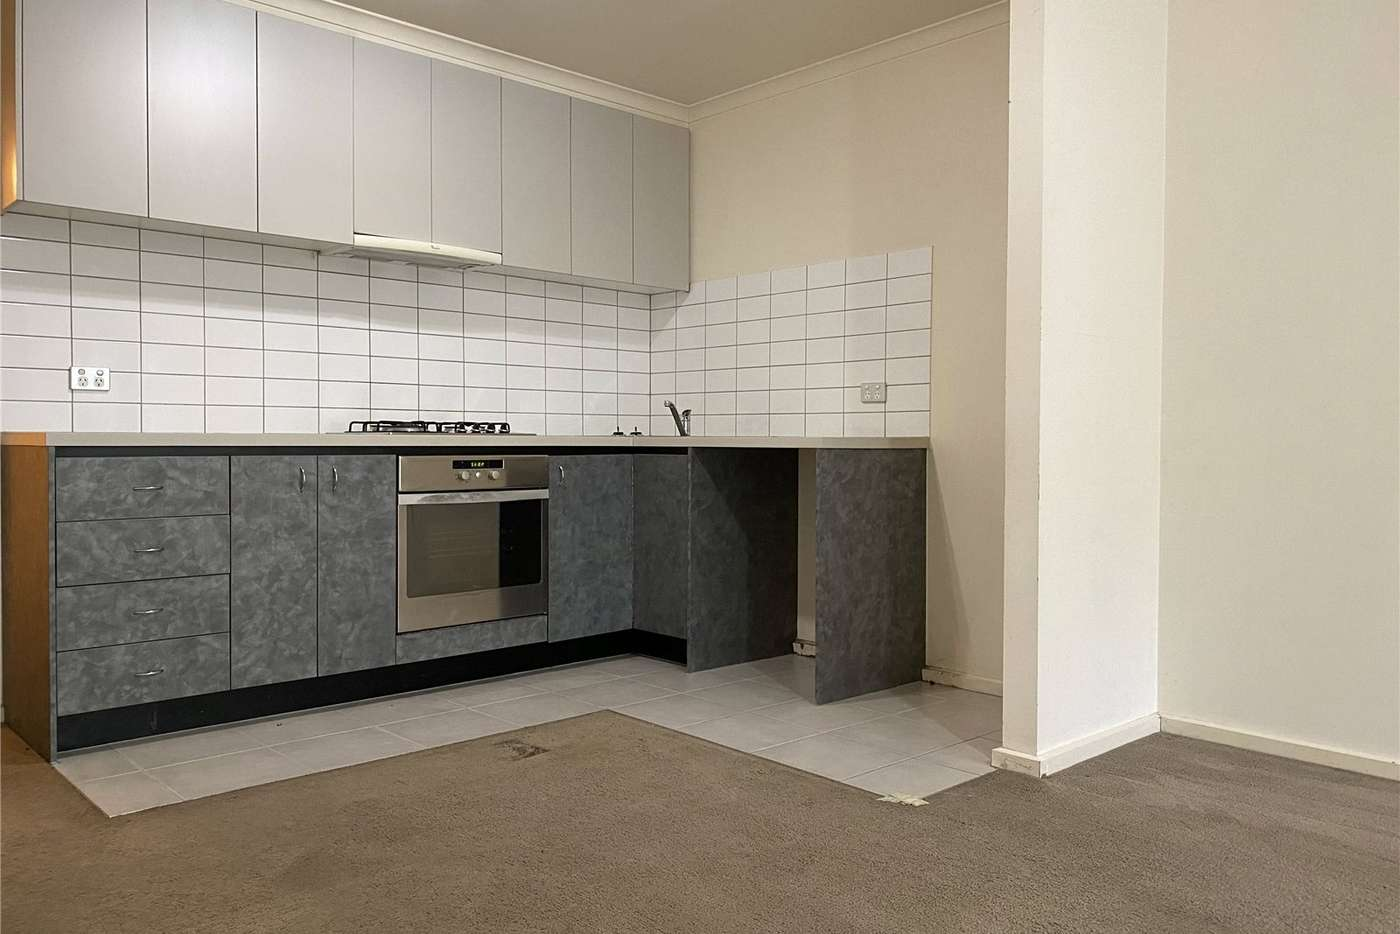 Main view of Homely apartment listing, 204/118 Dudley Street, West Melbourne VIC 3003